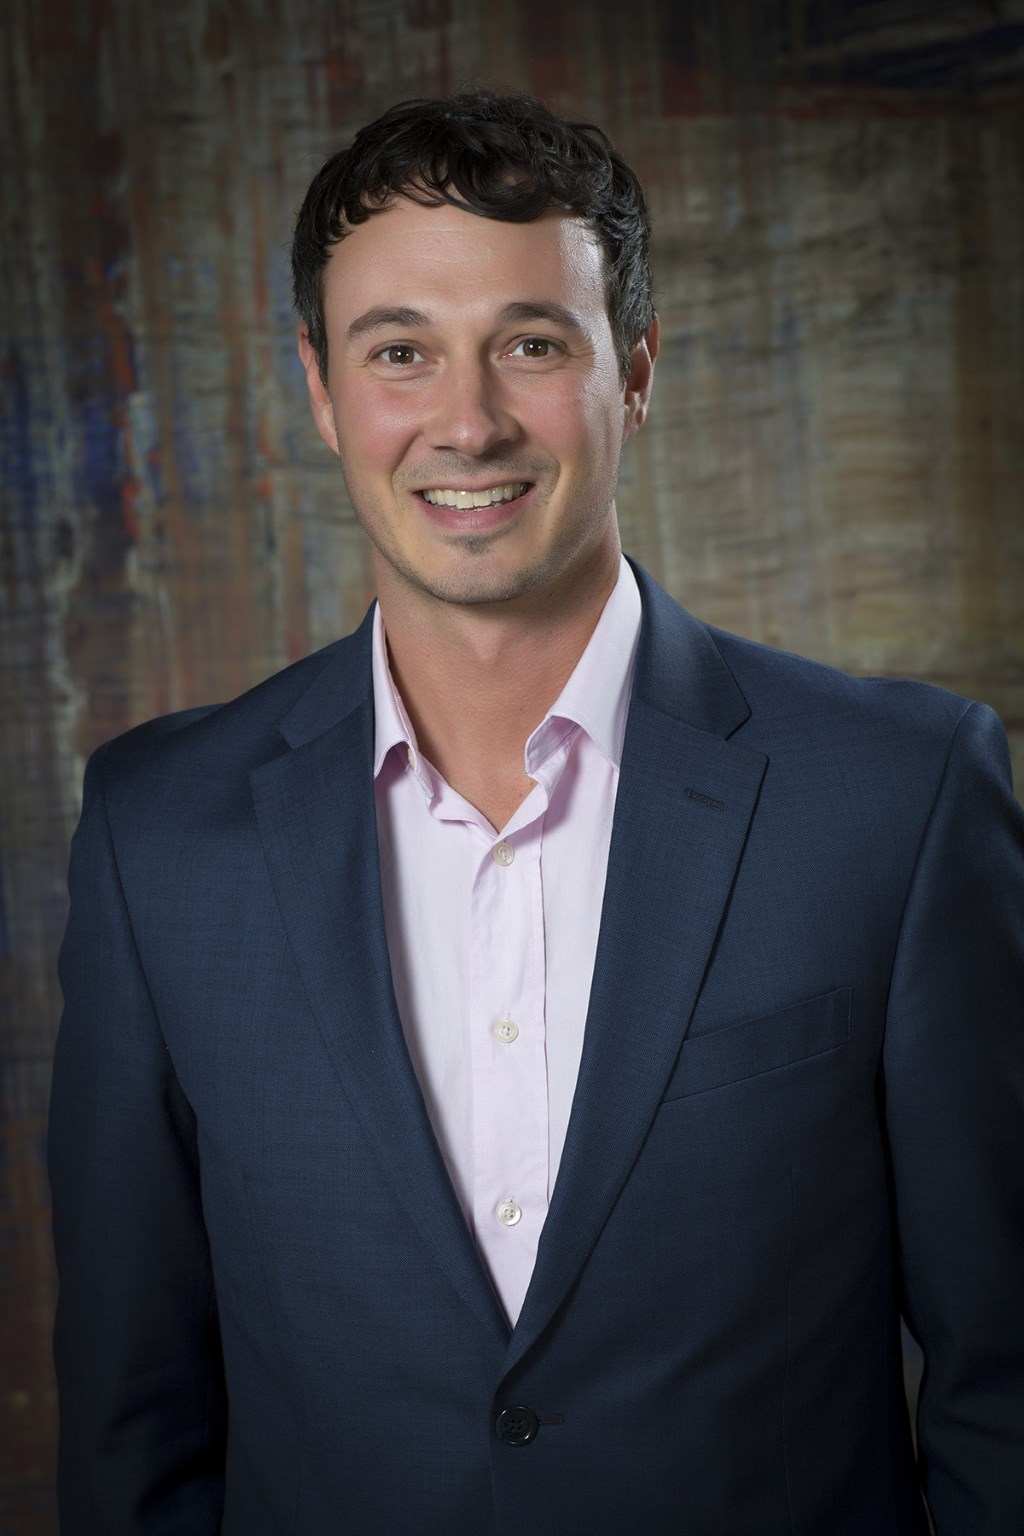 Nick Barbera joins SafeNet as Director of Strategic Accounts